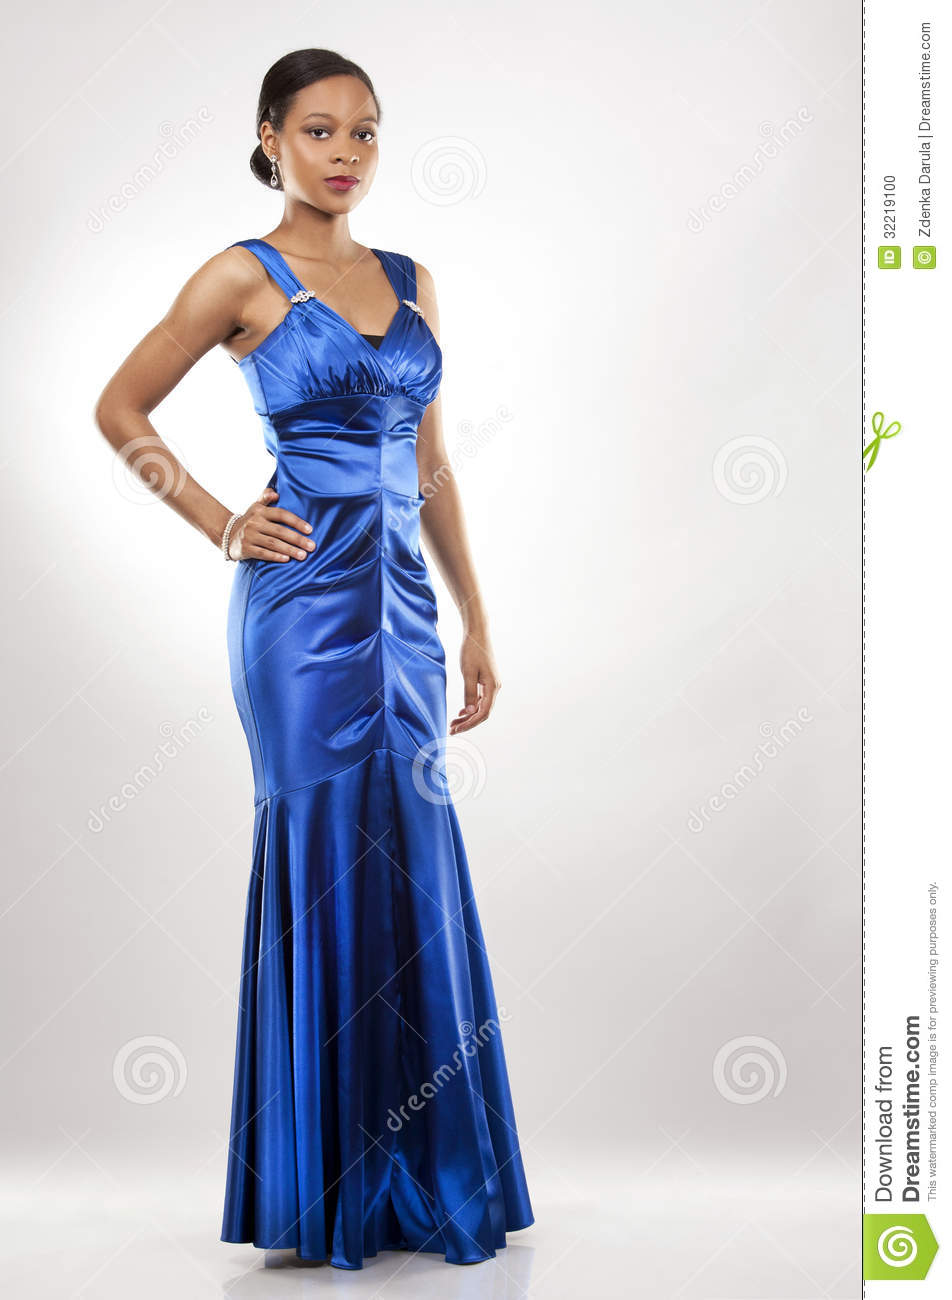 Black Woman In Evening Gown Stock Photo - Image of upscale, cute ...